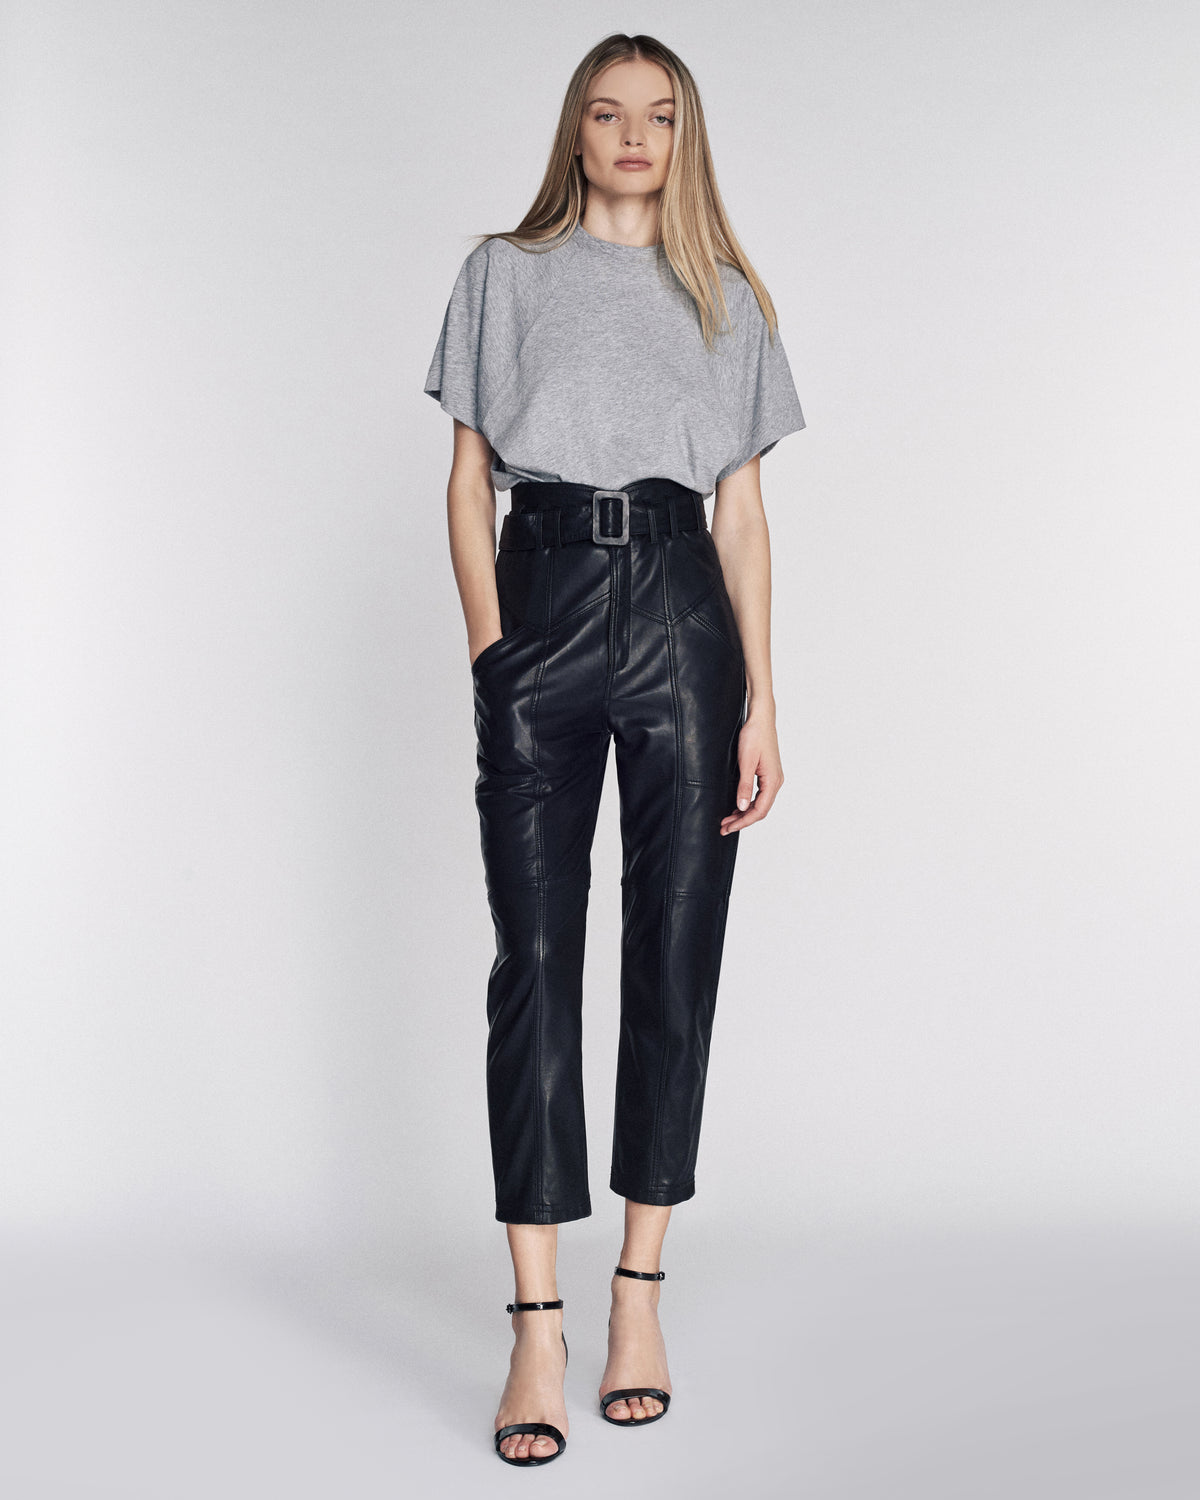 Wayne Leather Pant in Black